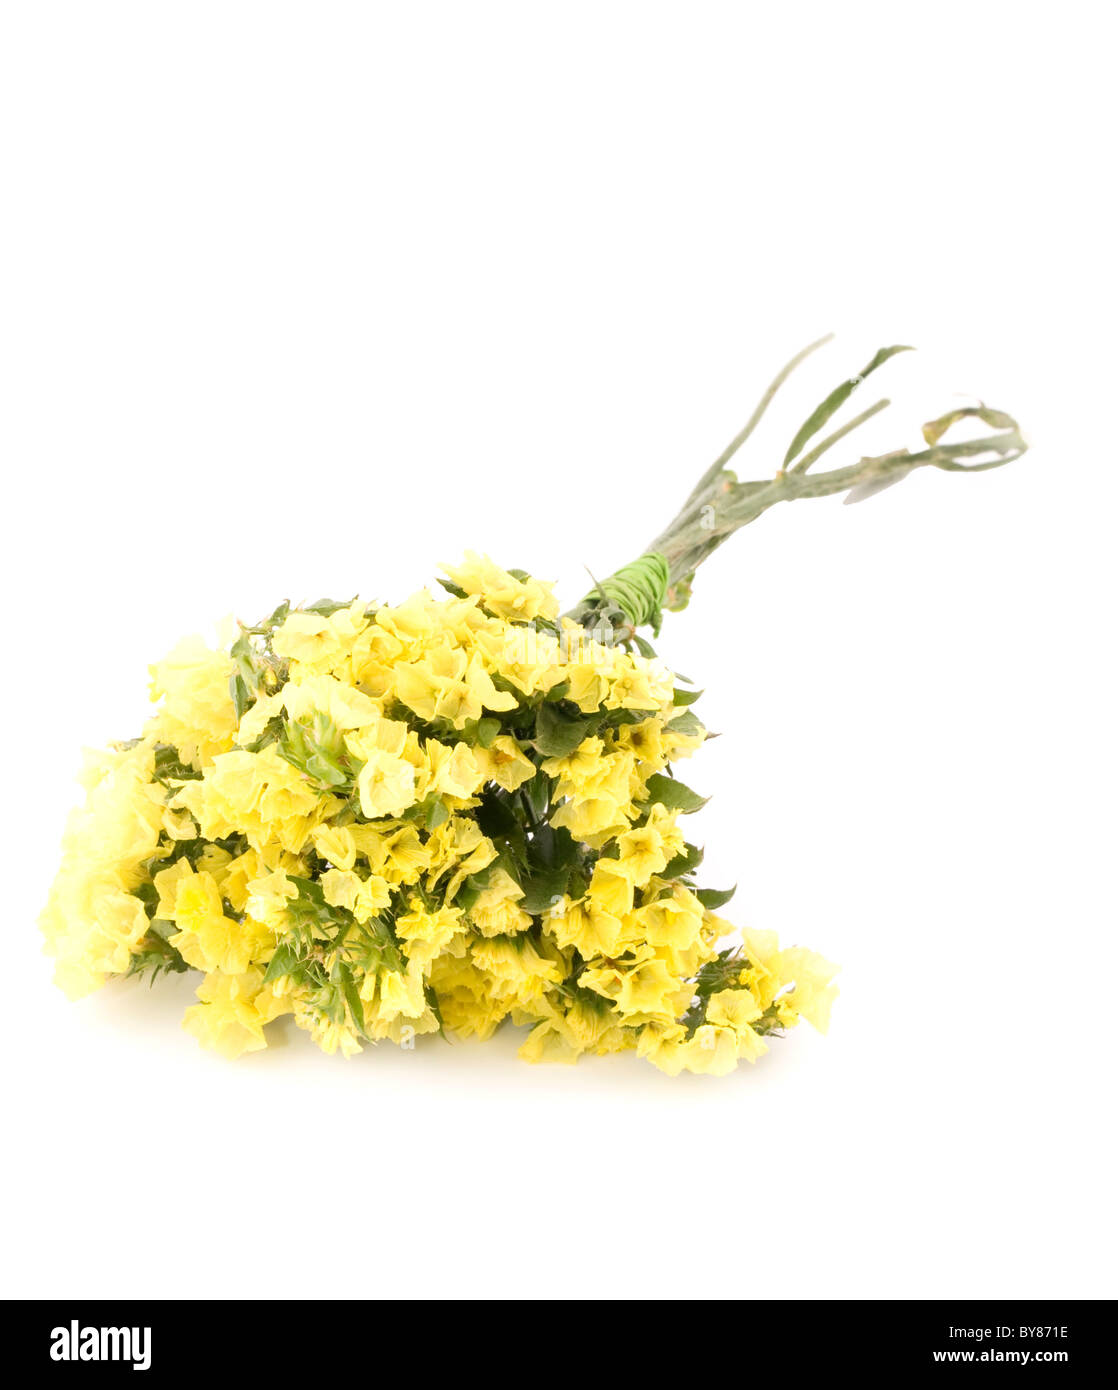 Small bouquet of yellow statice flowers on white background stock small bouquet of yellow statice flowers on white background mightylinksfo